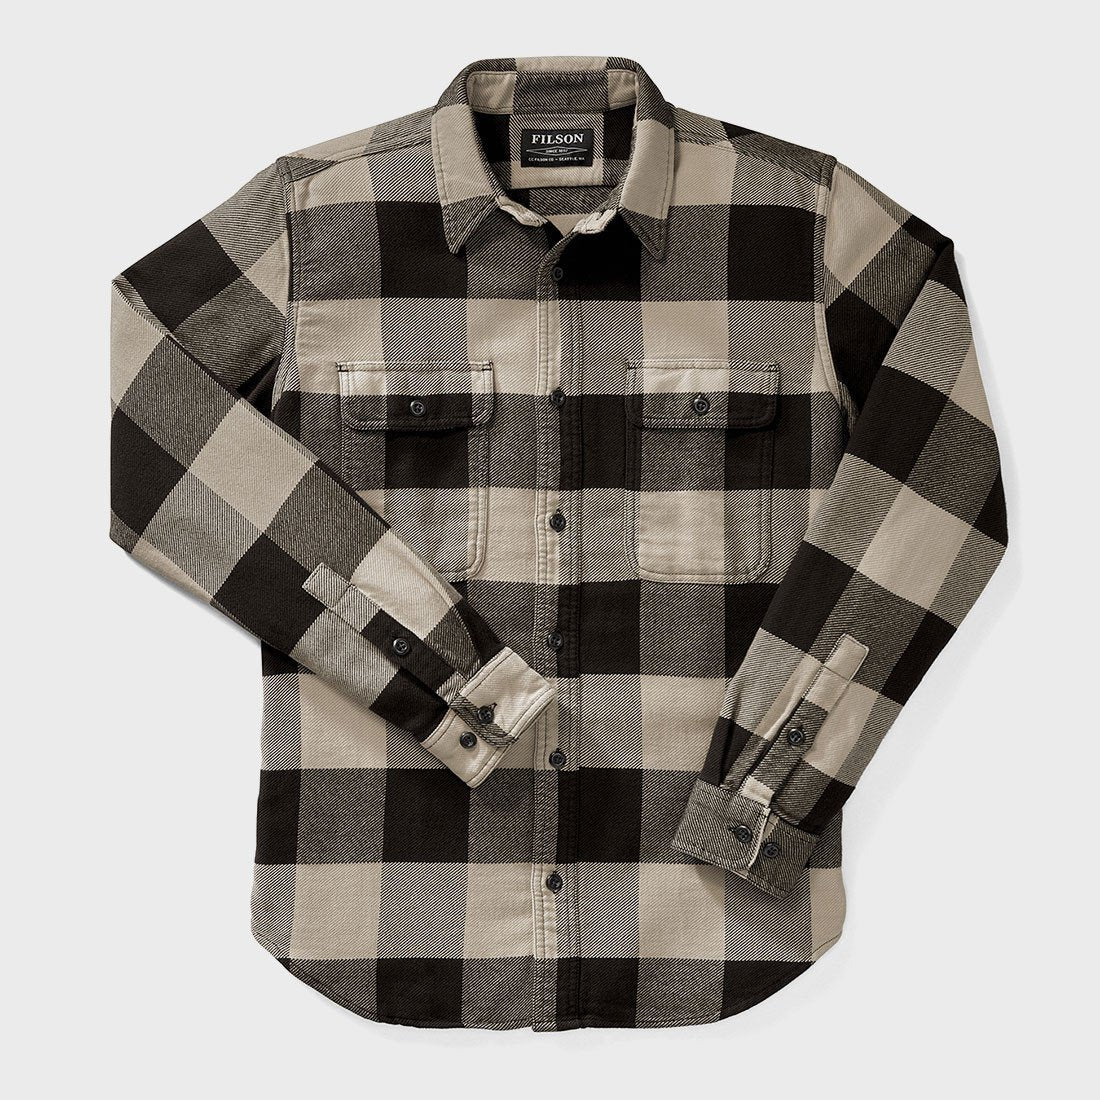 Filson Vintage Flannel Work Shirt Black/Cream